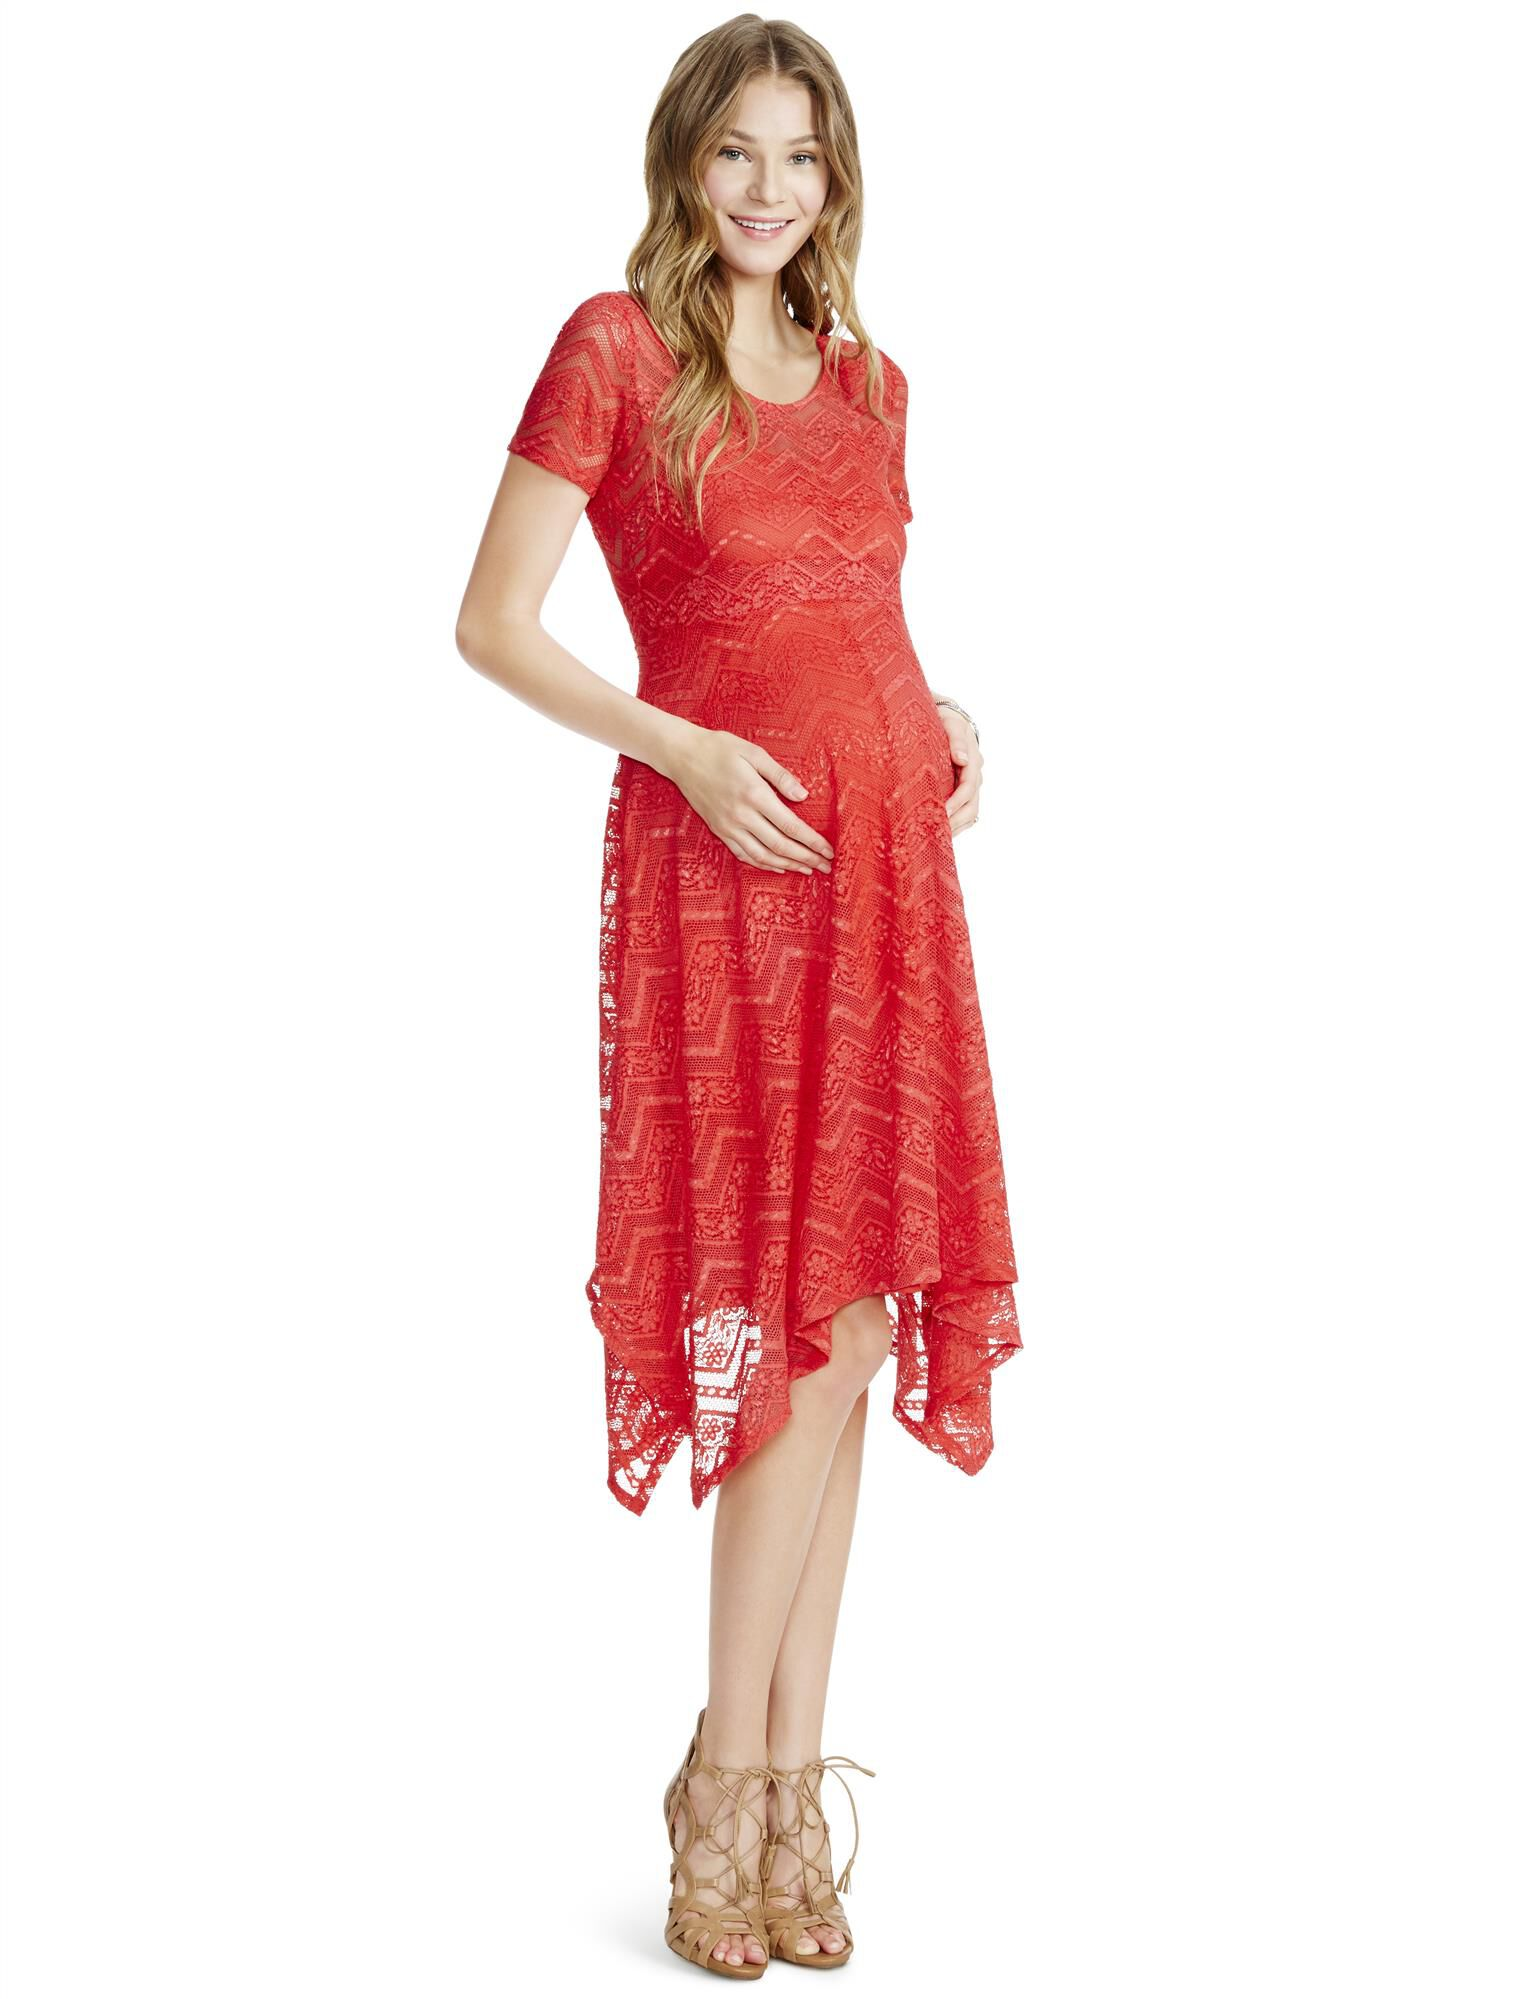 Vintage Style Maternity Clothes Jessica Simpson Lace Hanky Hem Maternity Dress- Coral $34.97 AT vintagedancer.com